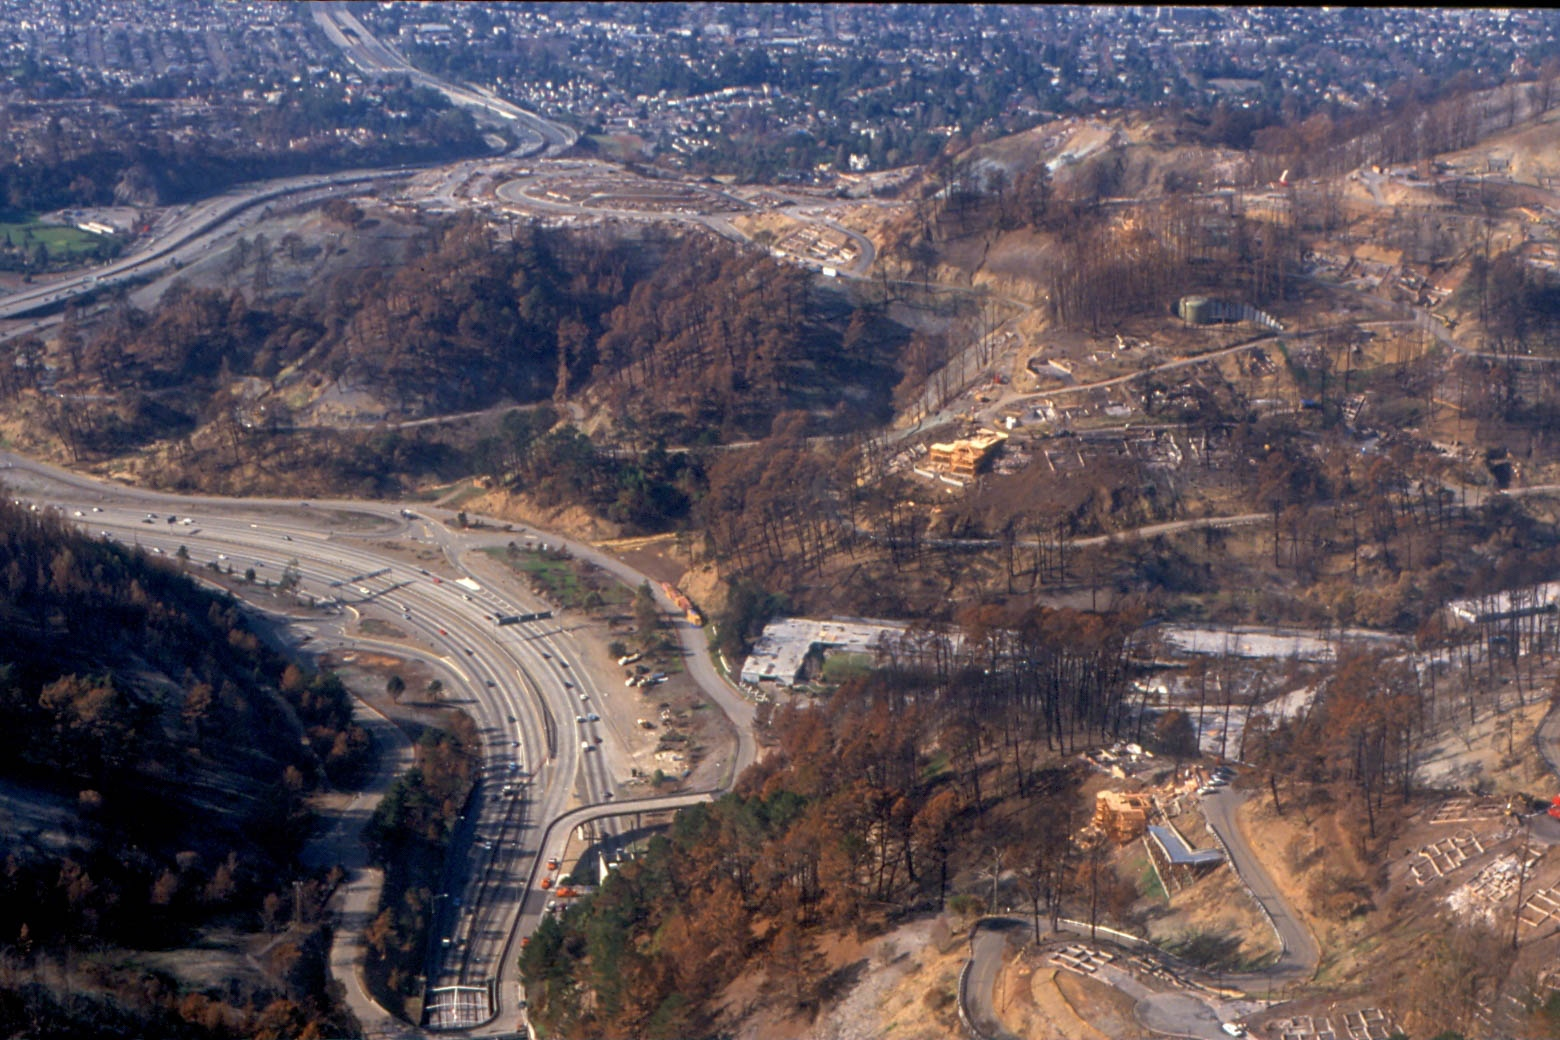 Canyon fire looking east the red line was the perimeter of the canyon - The Devastating East Bay Hills Fire Of 1991 Swept Down Temescal Canyon Quickly Destroying Nearly Everything In Its Path The Area Now Is Largely Rebuilt